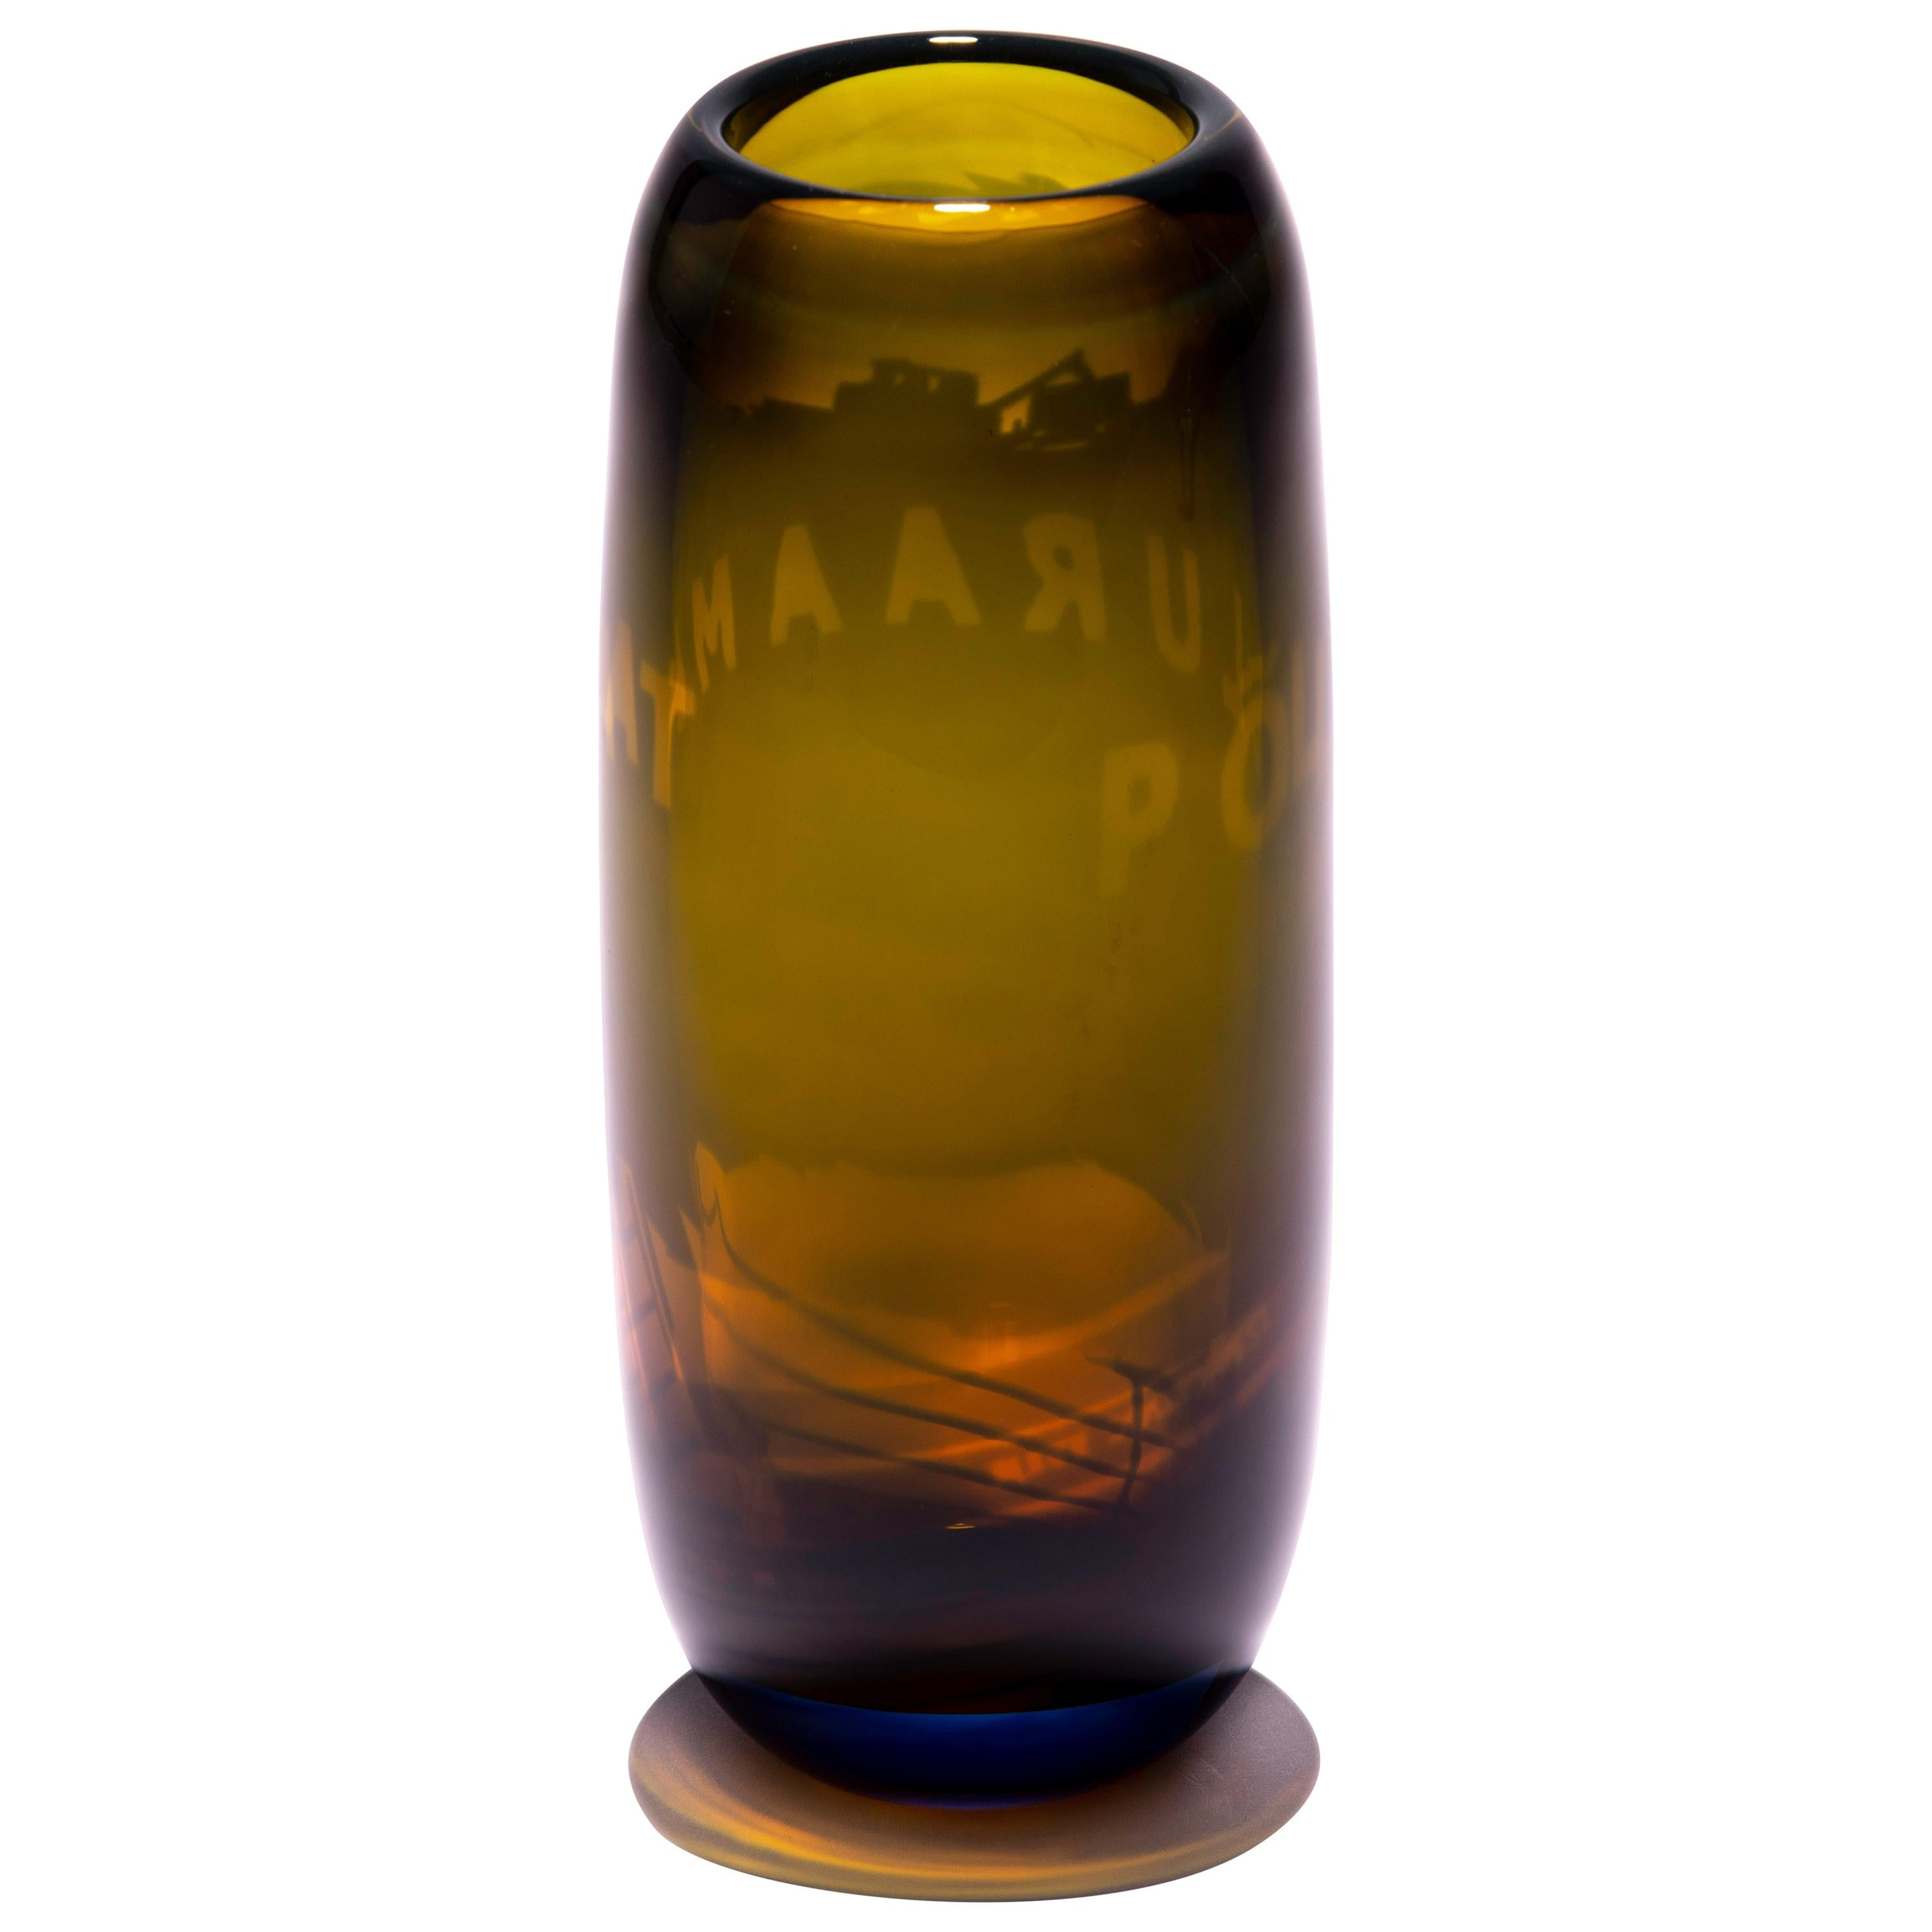 Unique Harvest Graal Brown Glass Vase by Tiina Sarapu